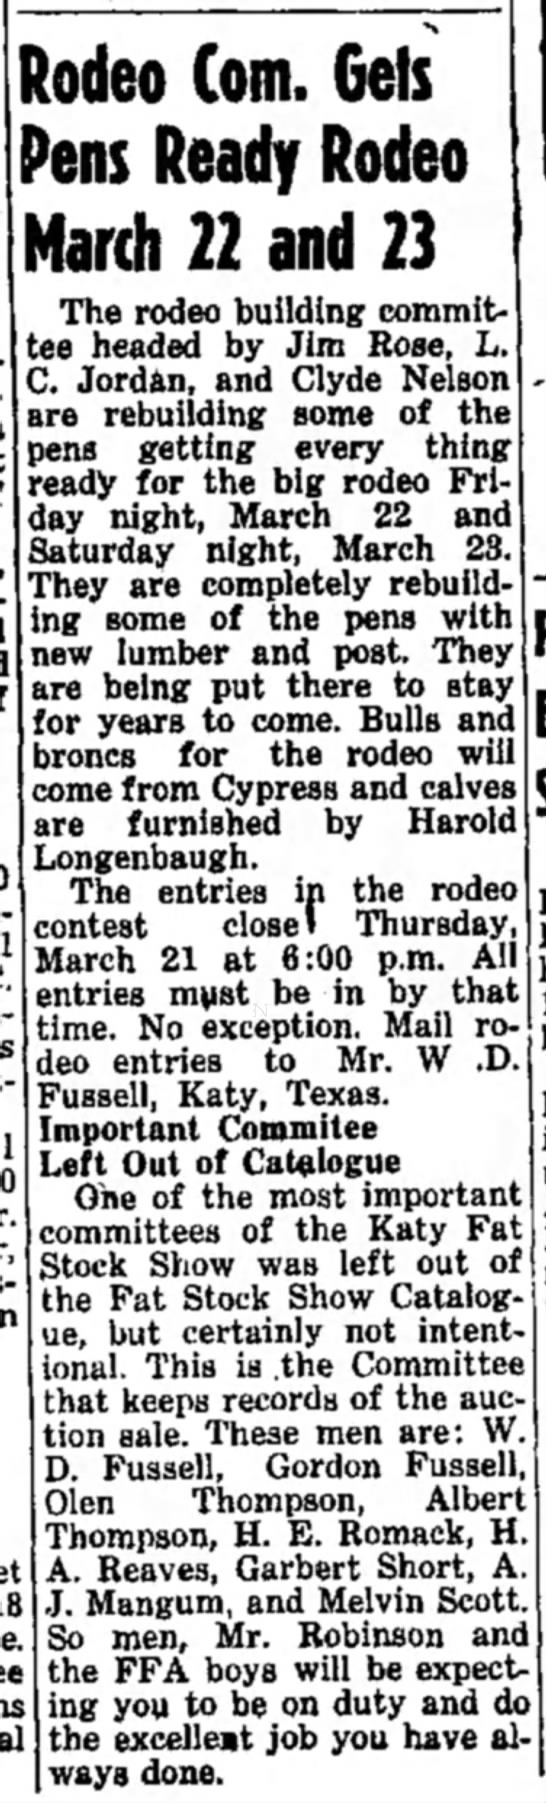 - Rodeo Com. Gets Pens Ready Rodeo March 22 and...